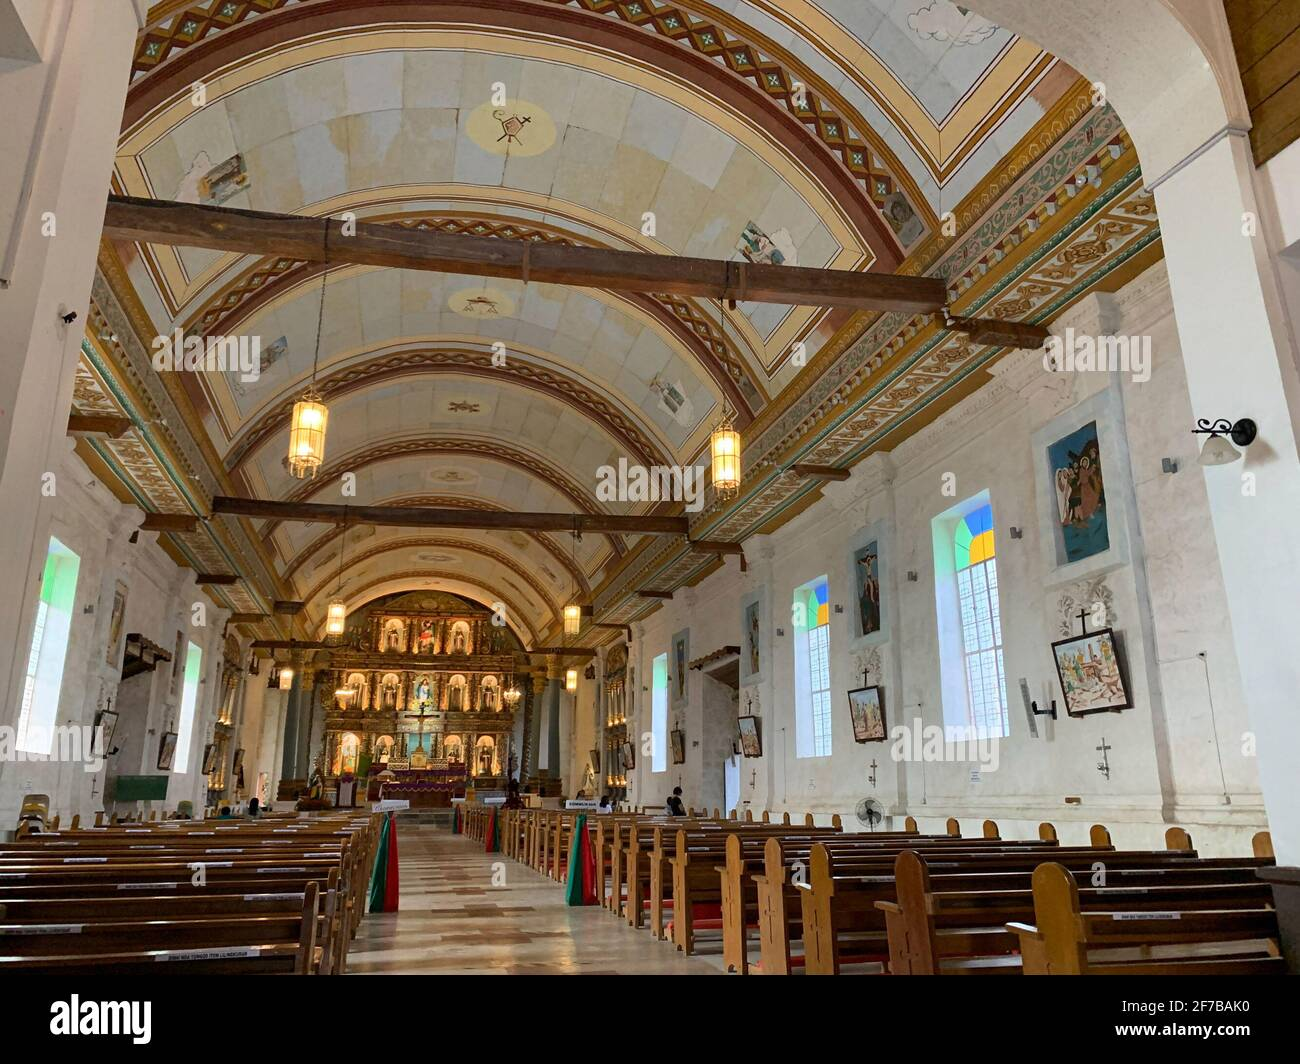 Inside the fully restored church of the Immaculate Concepcion in Guiuan Eastern Samar. This church was destroyed during Typhoon Yolanda last 2013. Philippines. Stock Photo